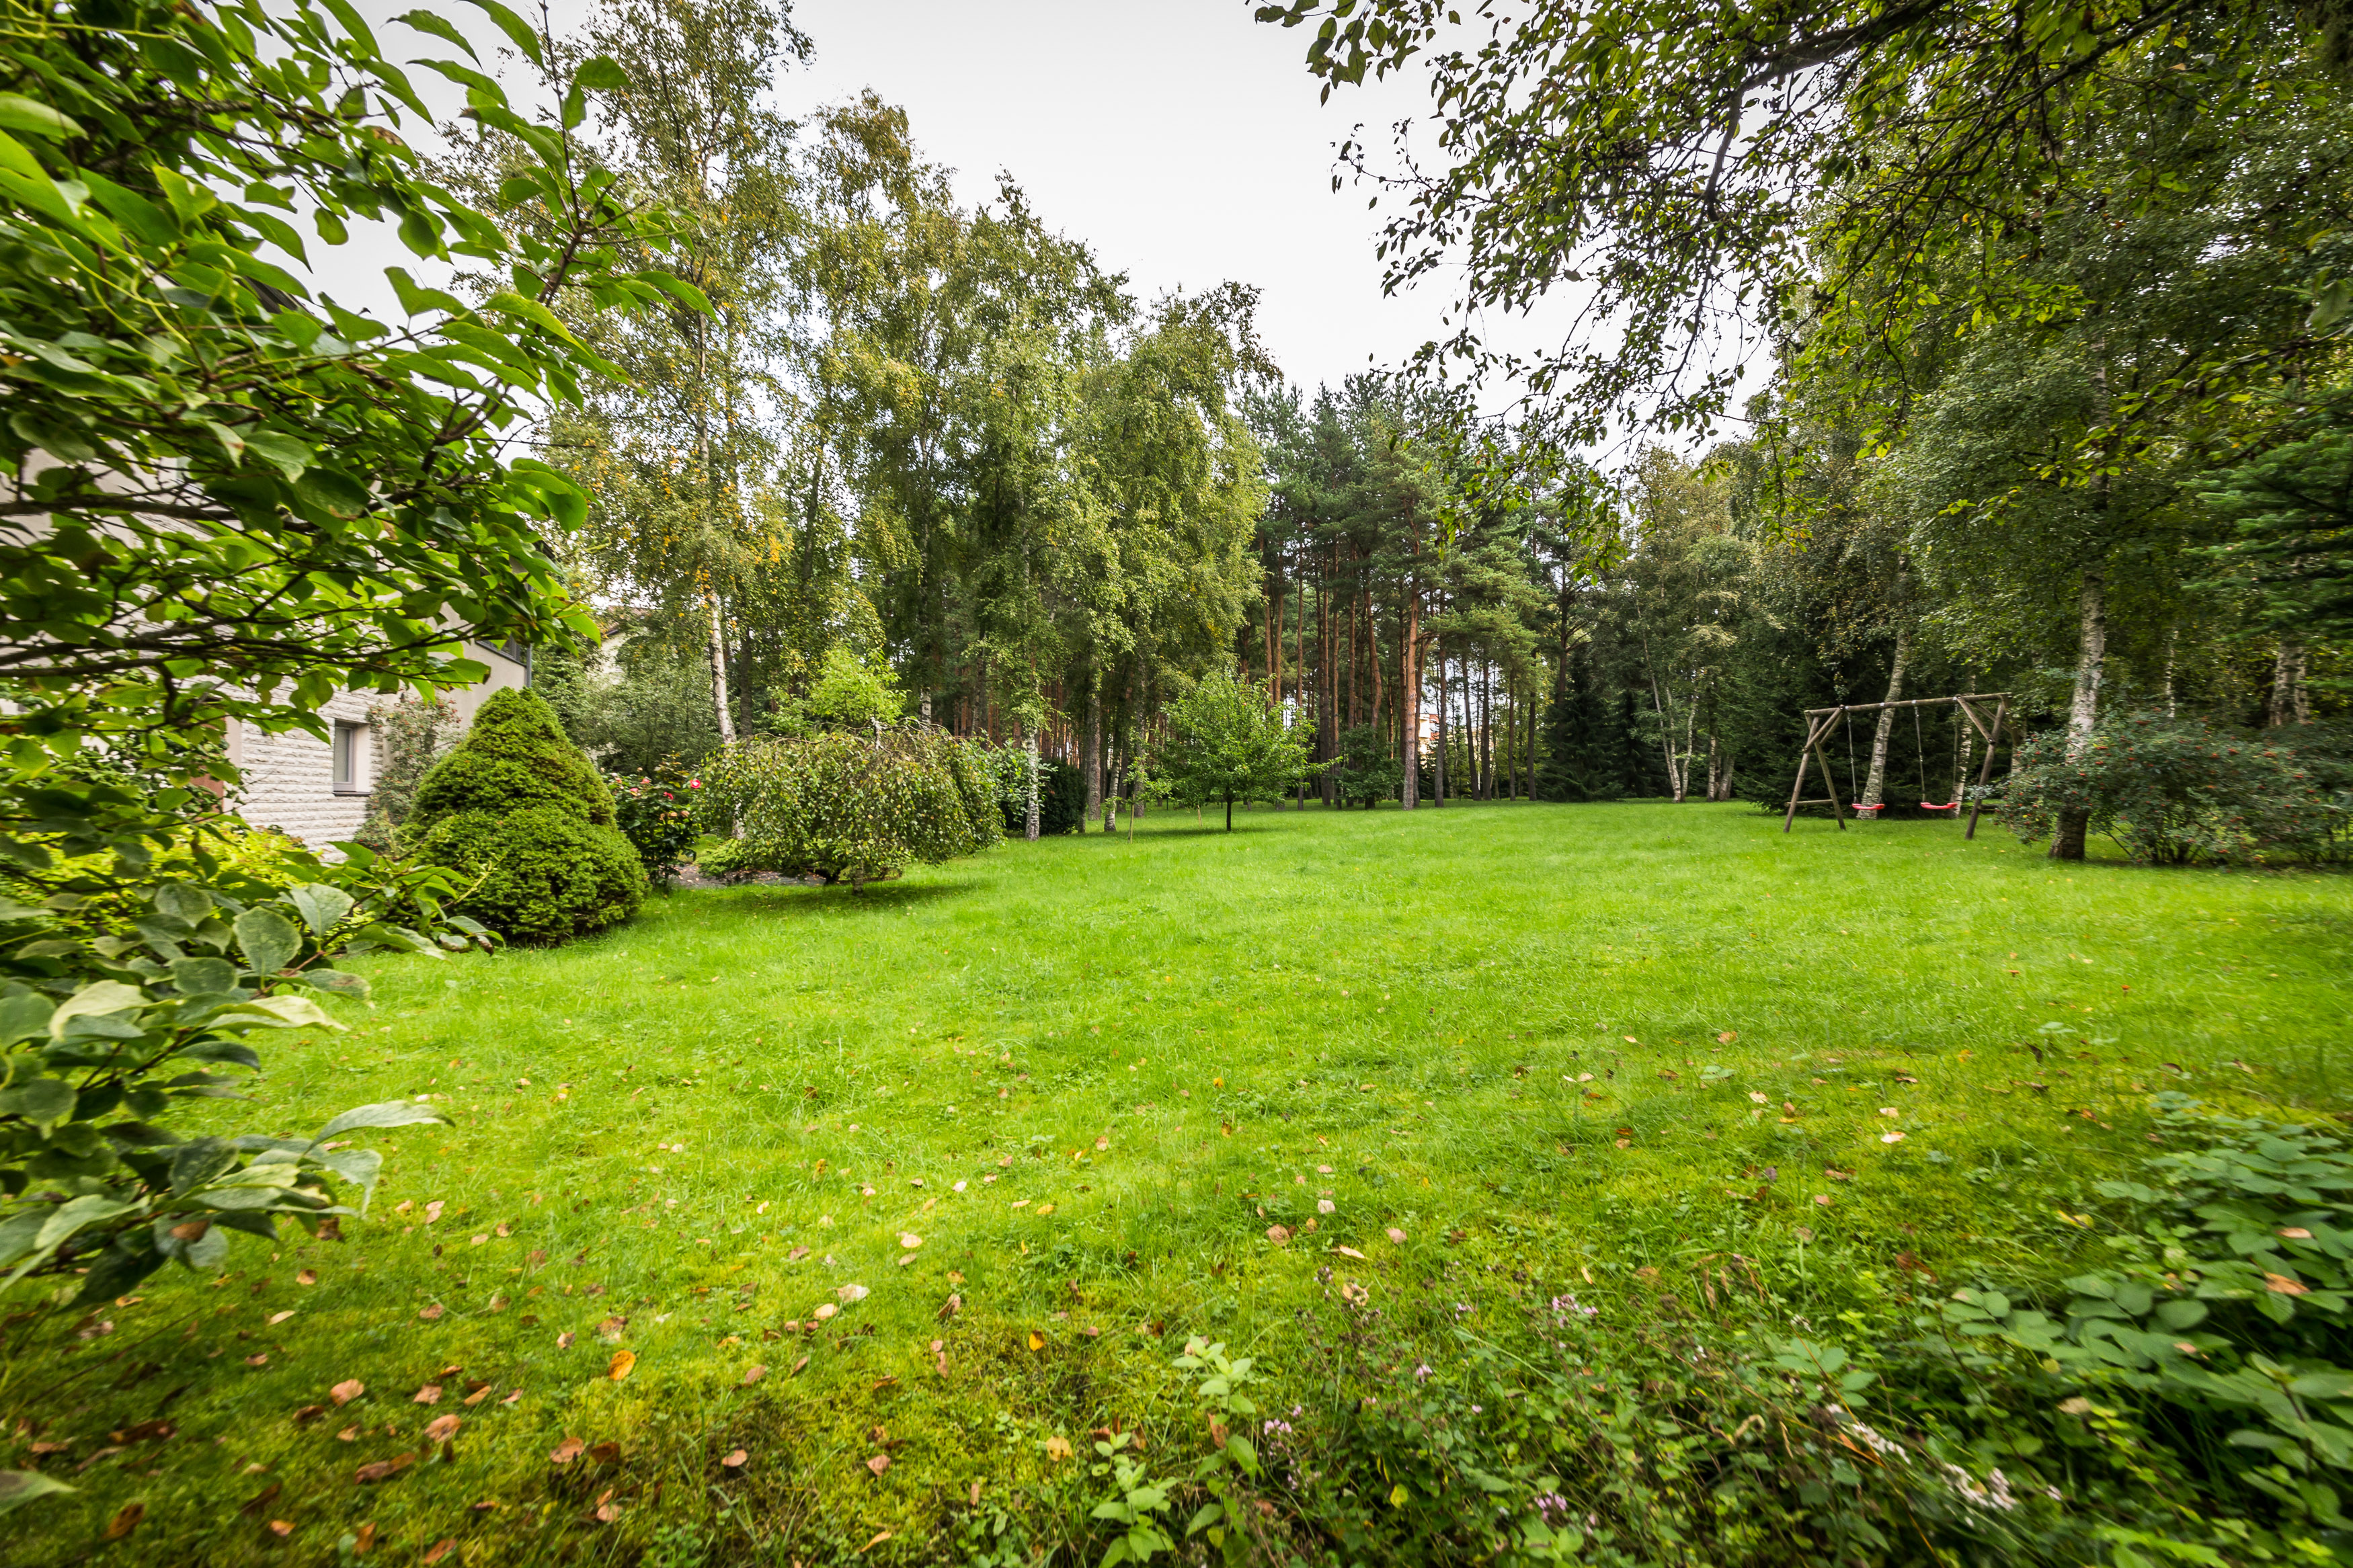 Land for Sale at Residential land plot close to the sea in Pirita, Tallinn Lauri tee 9 Pirita Tallinn, Harjumaa, 11912 Estonia